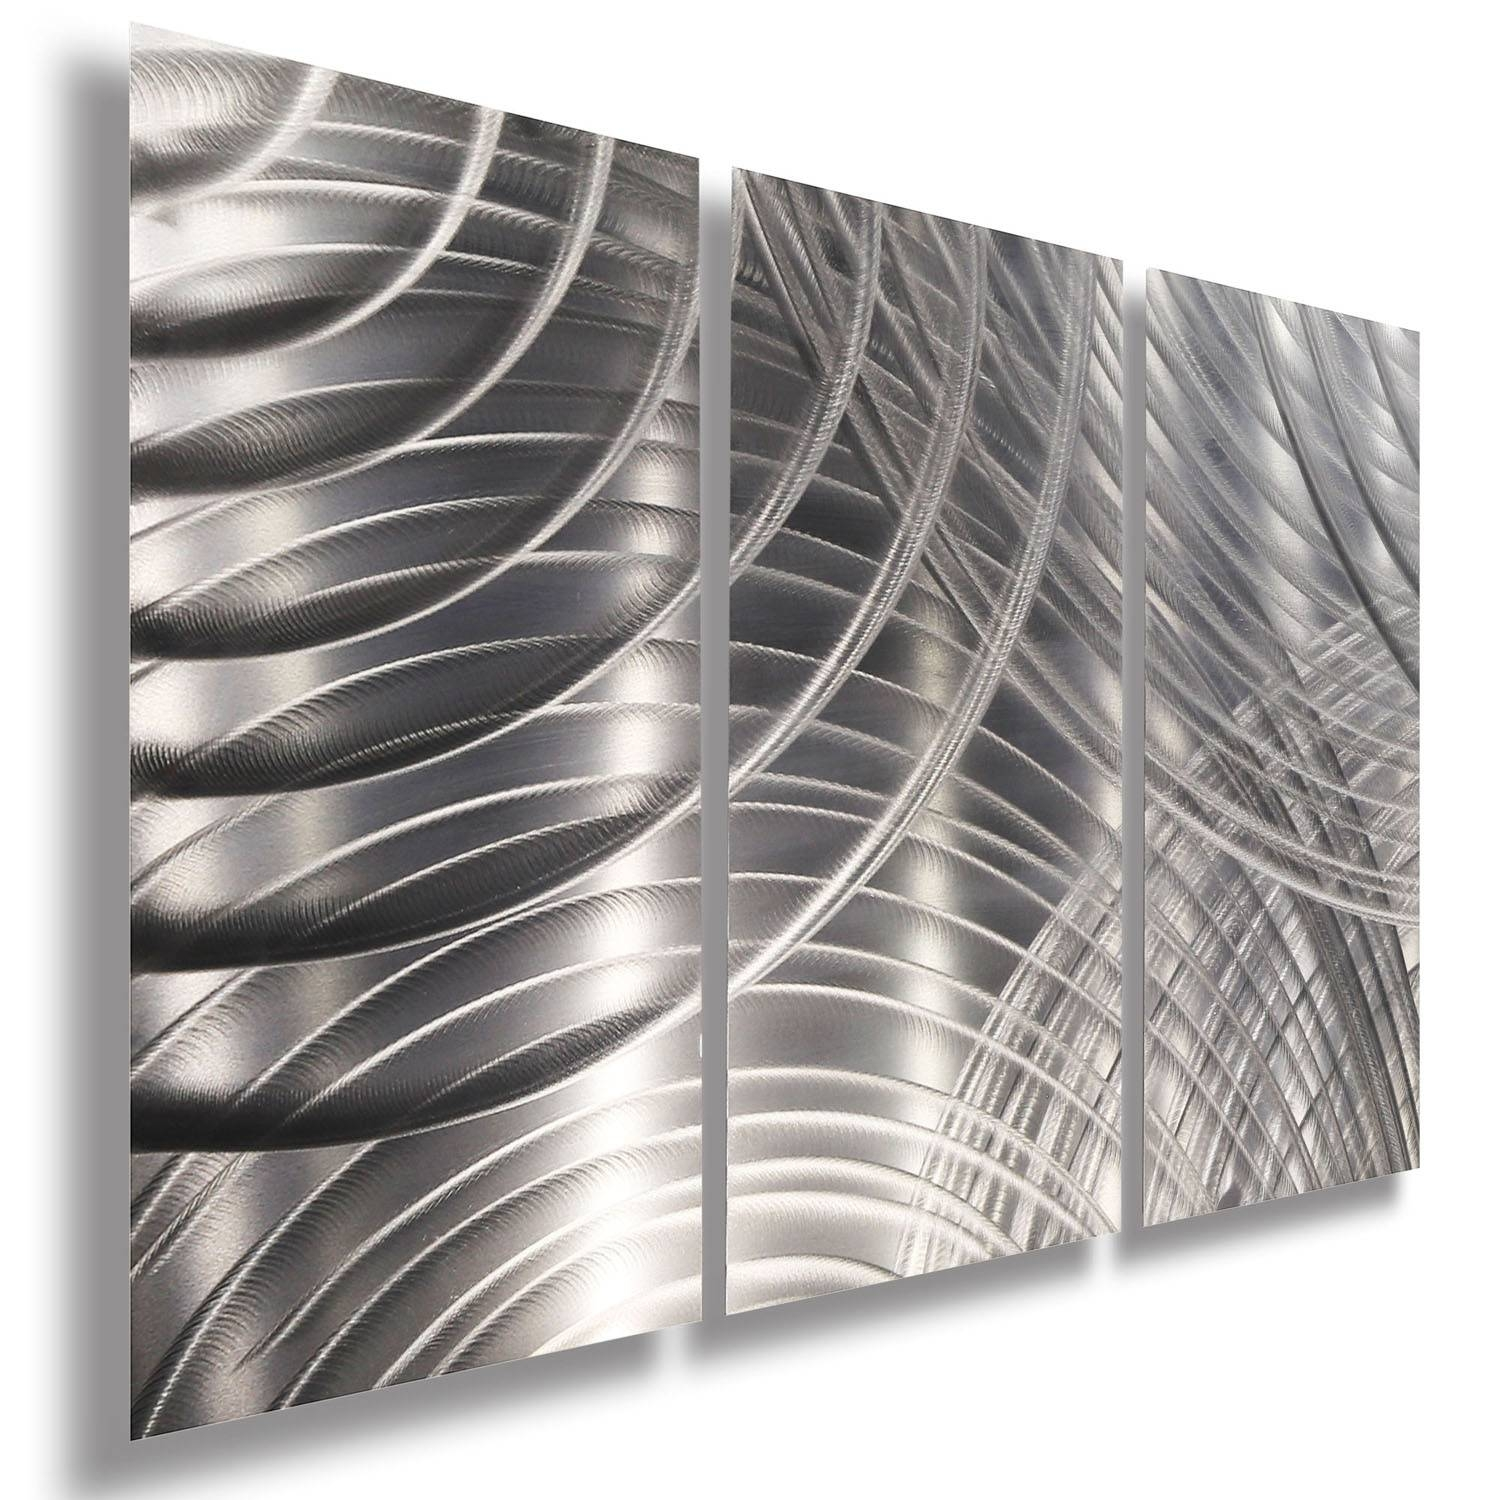 Equinox Ii 3p – All Silver 3 Panel Metal Wall Art Accentjon With Regard To Best And Newest Etched Metal Wall Art (View 5 of 20)